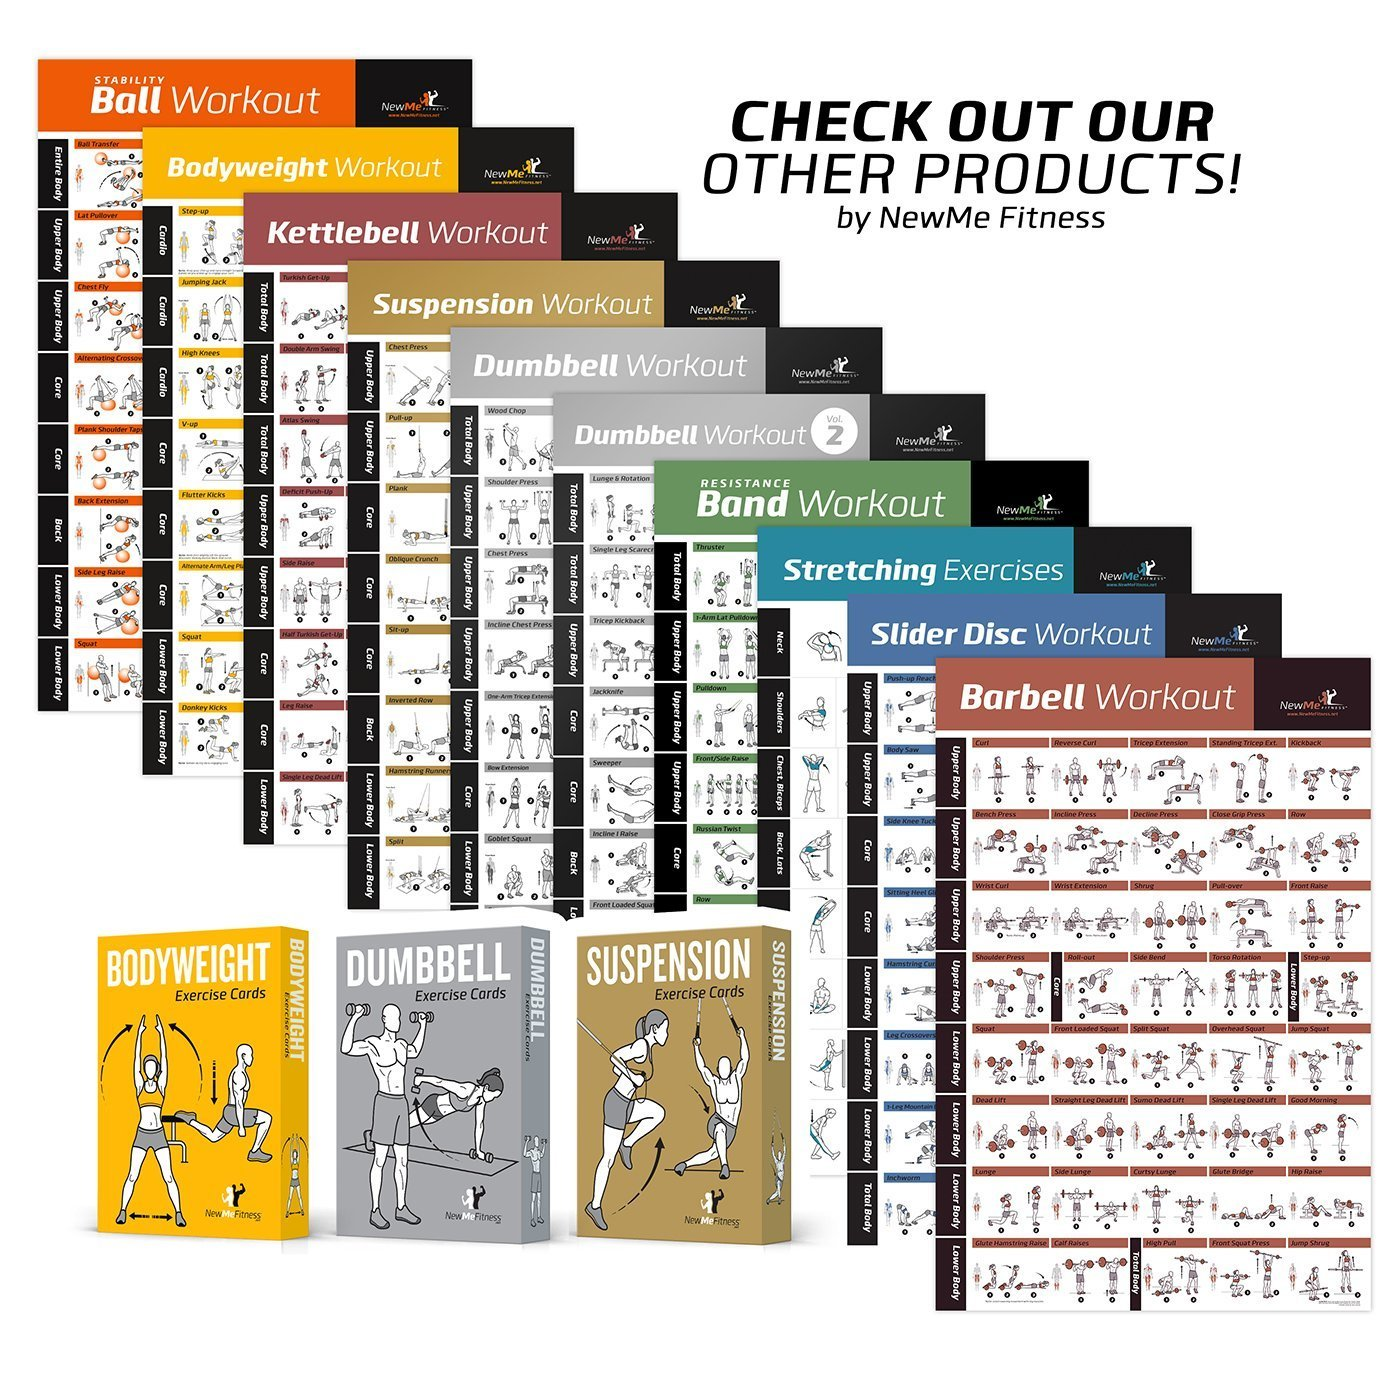 Strength Training Routine BARBELL WORKOUT EXERCISE POSTER LAMINATED Home Gym Weight Lifting Chart 20x30 Body Building Guide w// Free Weights /& Resistance Build Muscle Tone /& Tighten